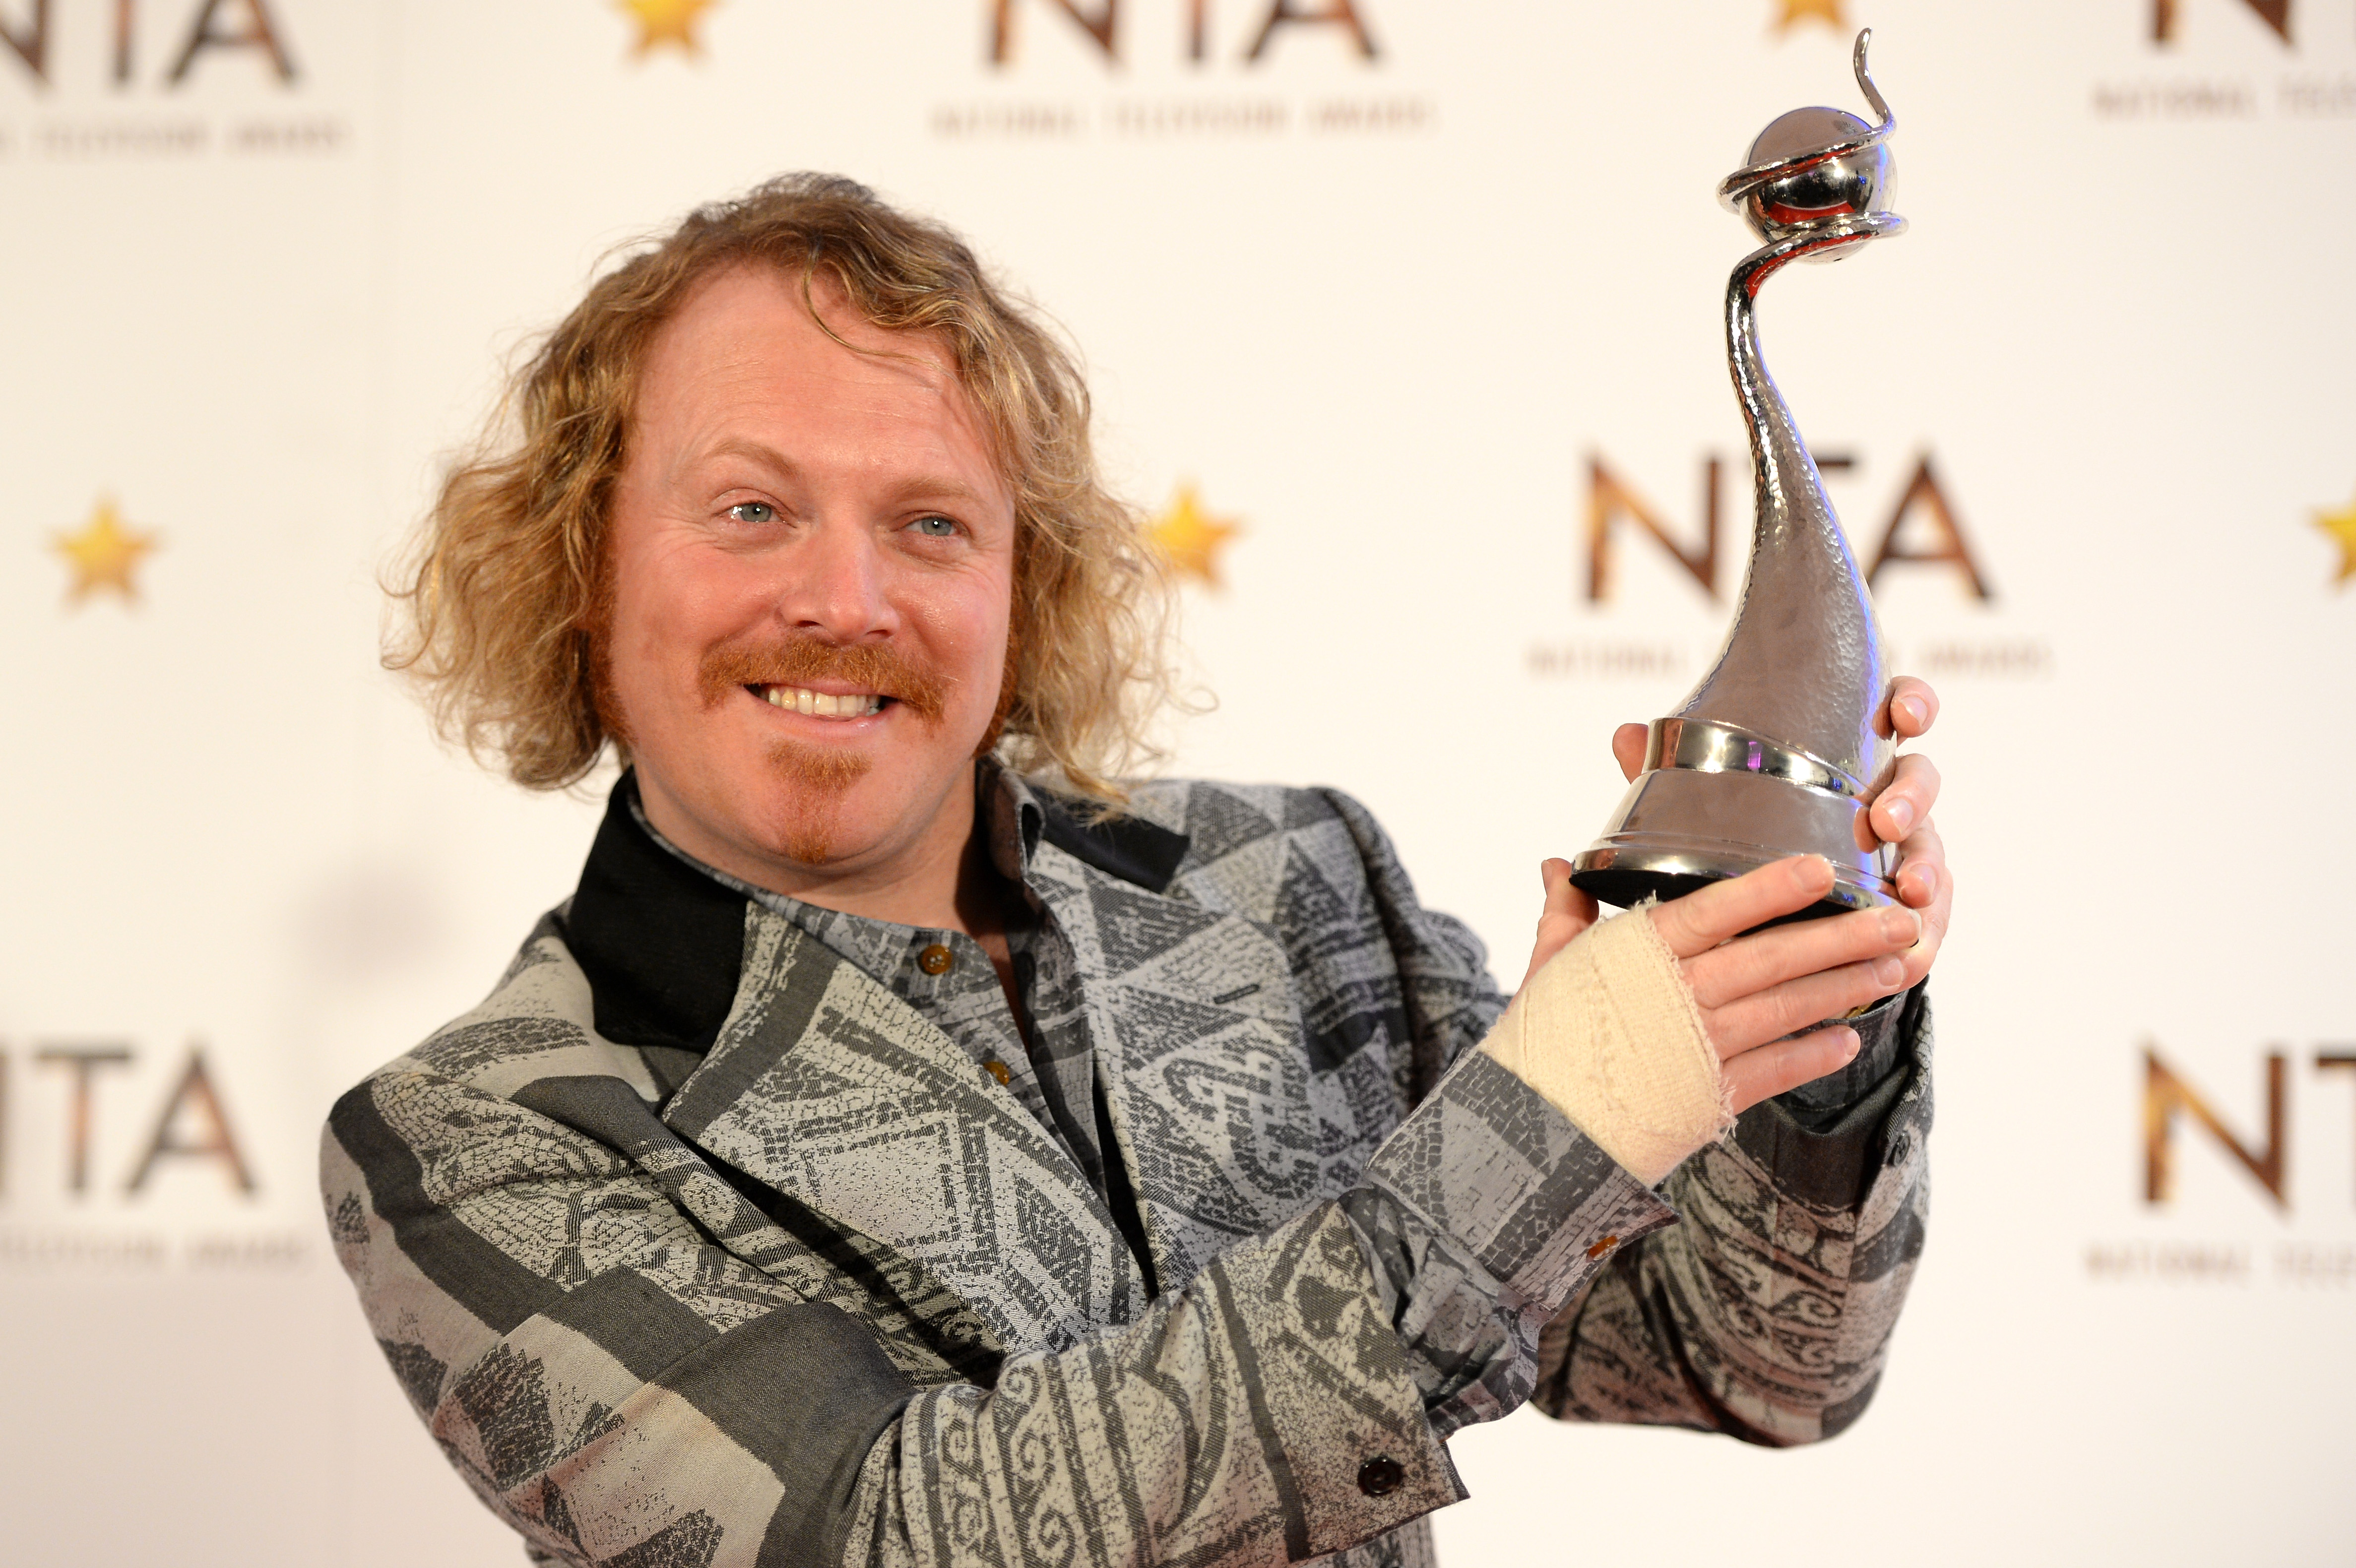 Why does Keith Lemon wear a bandage on his arm?